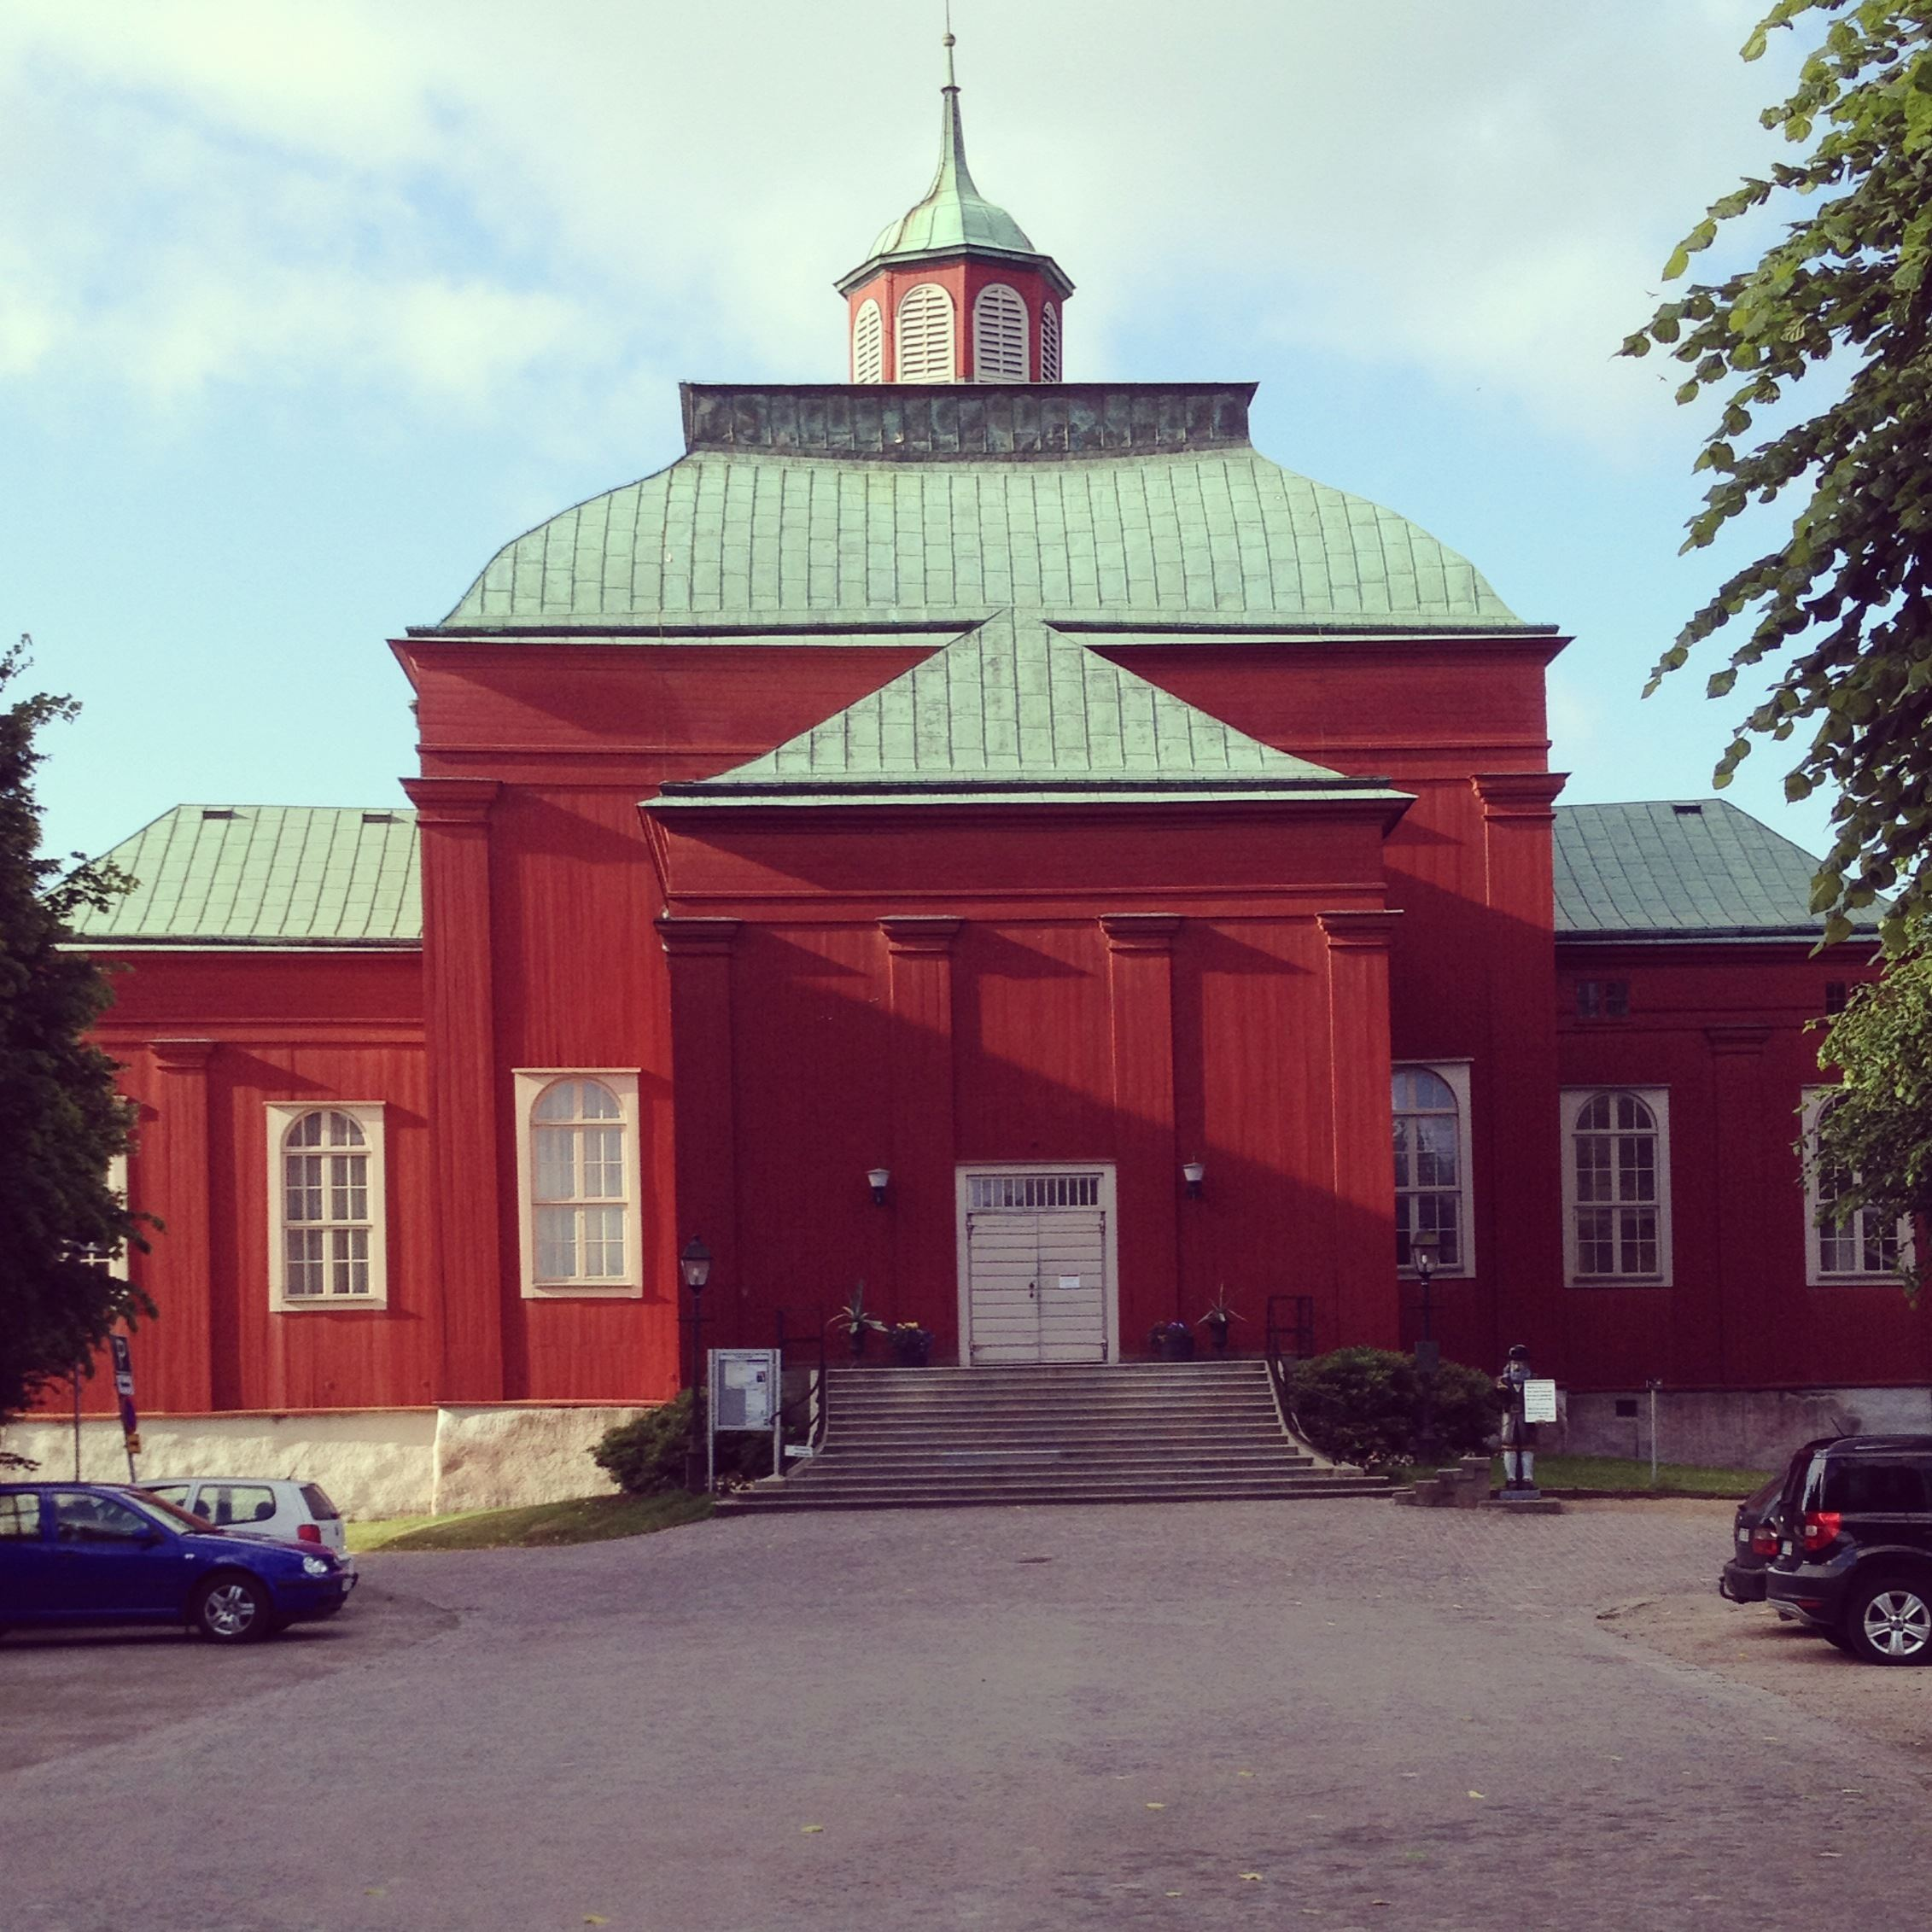 Guided tour - Karlskrona in 60 minutes in Swedish